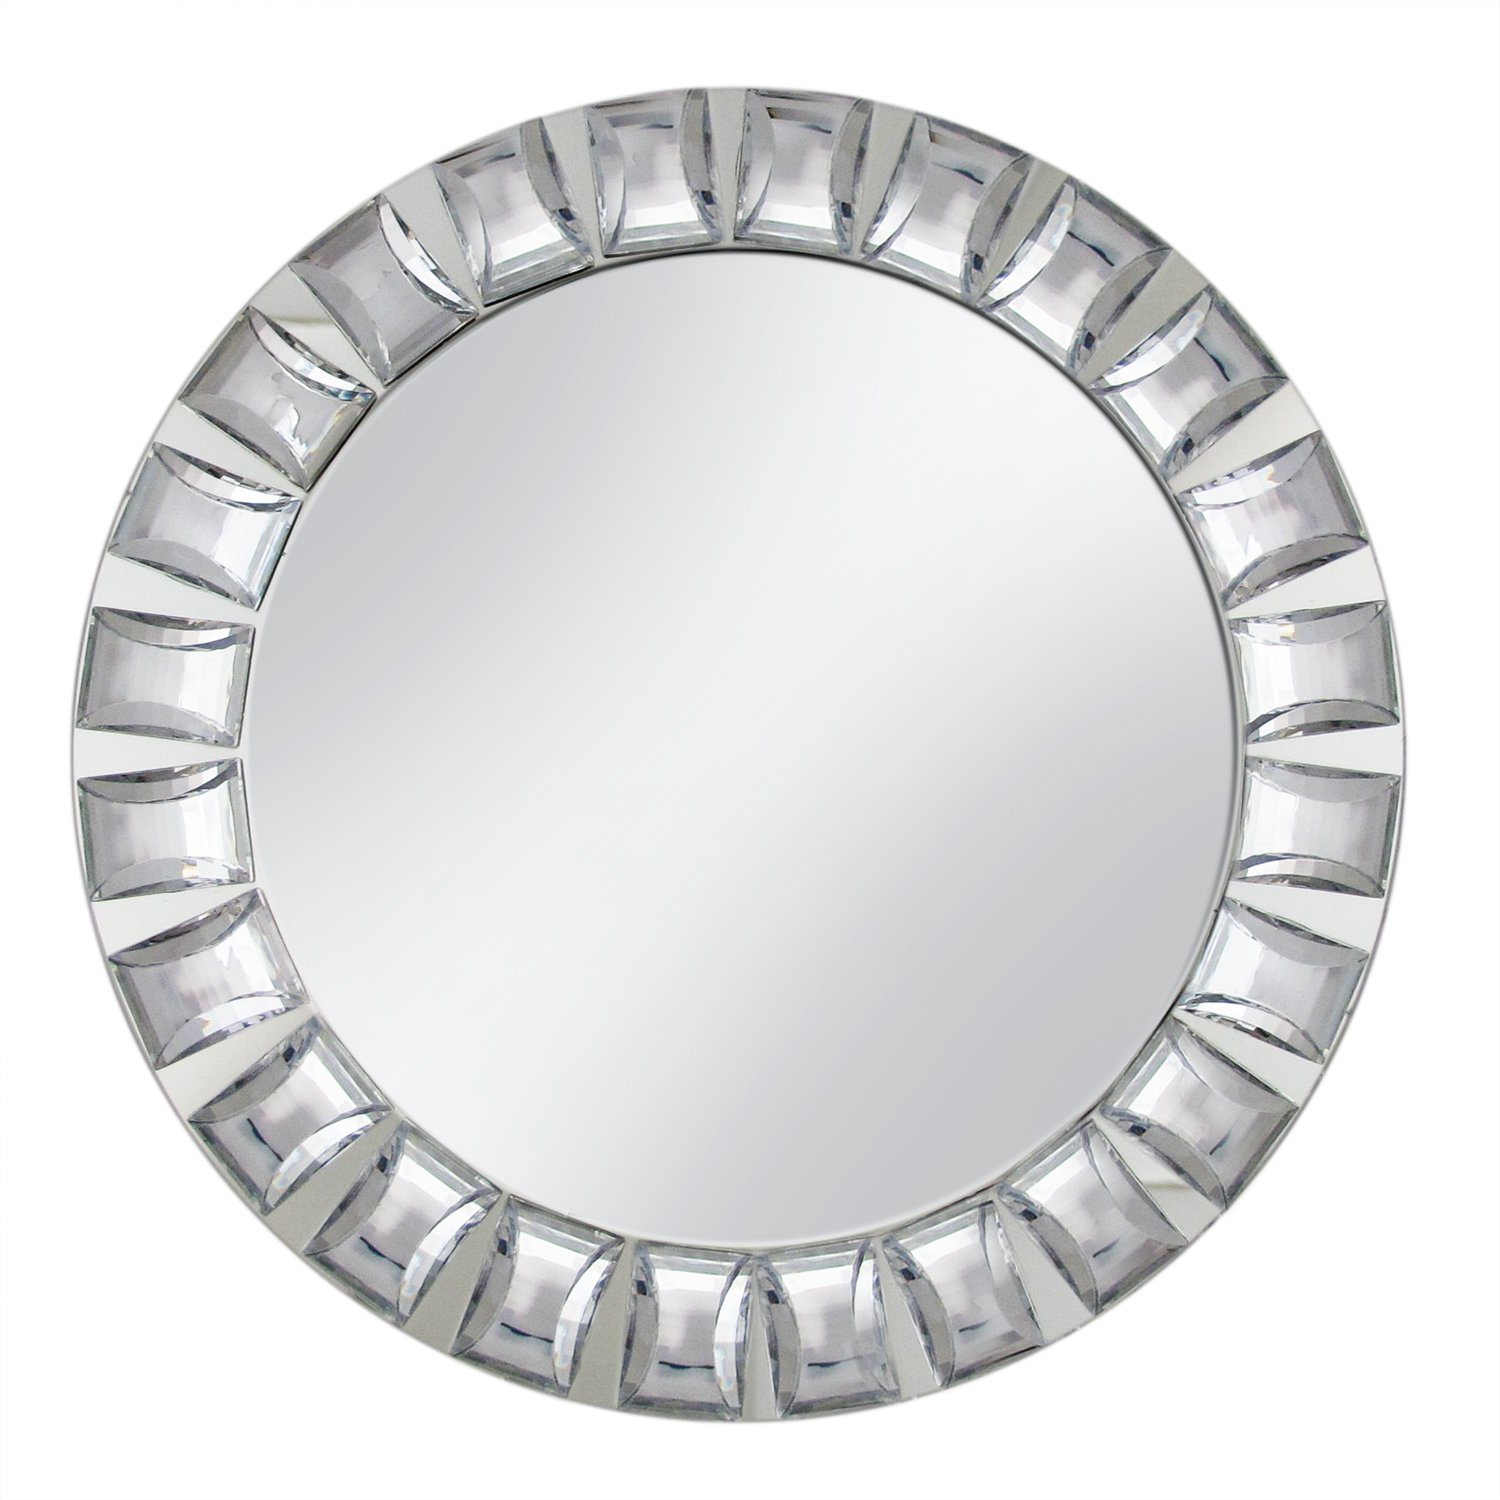 ChargeIt by Jay Charger Plate with Big Beads, Mirror Jay Imports 1330038